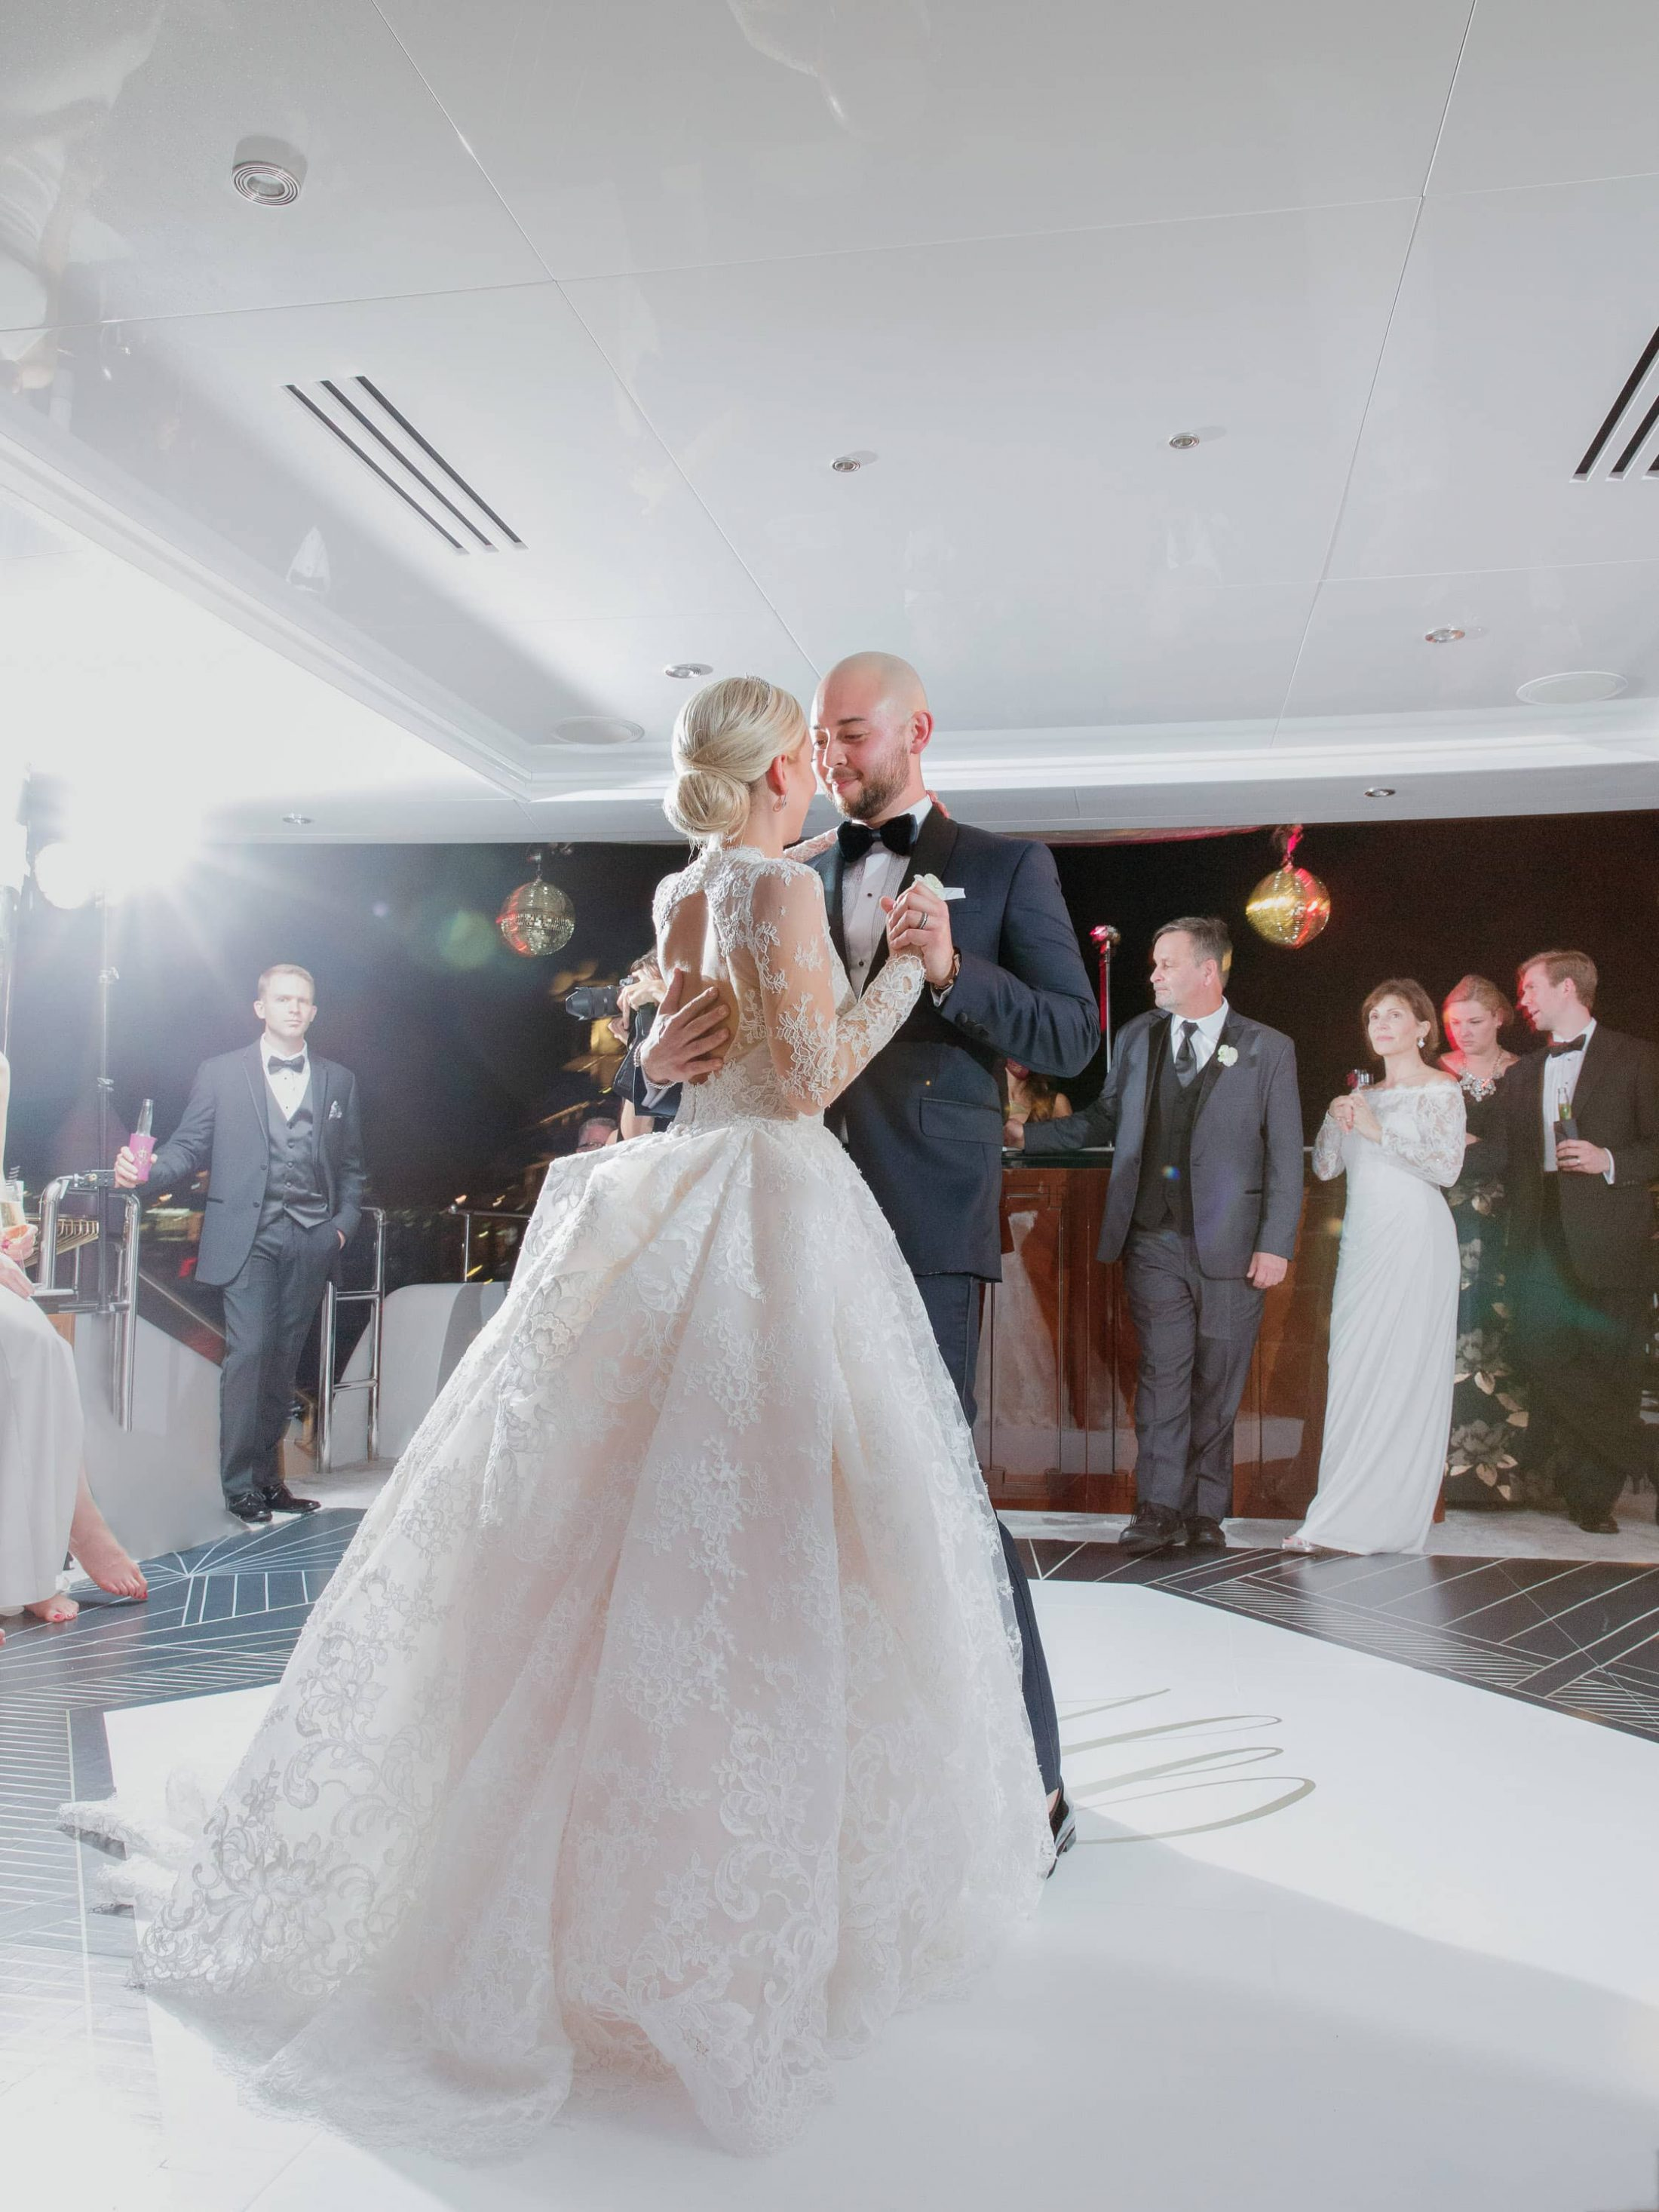 Bride and groom first dance during reception at this Miami yacht wedding | Photo by Corbin Gurkin